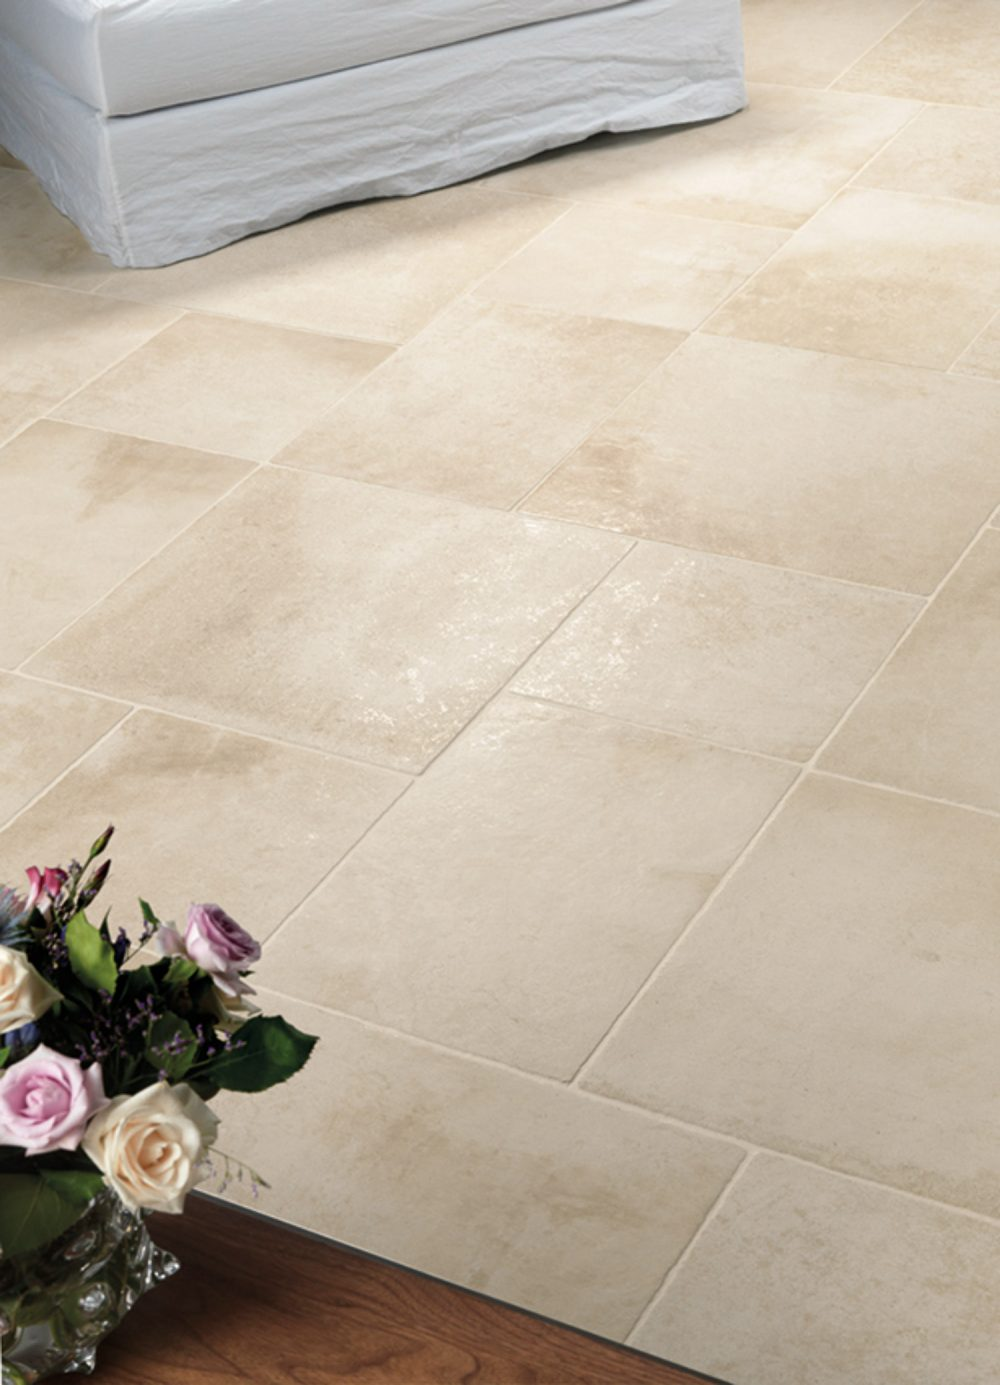 Chateaux Cream Wall & Floor Tiles - multi size